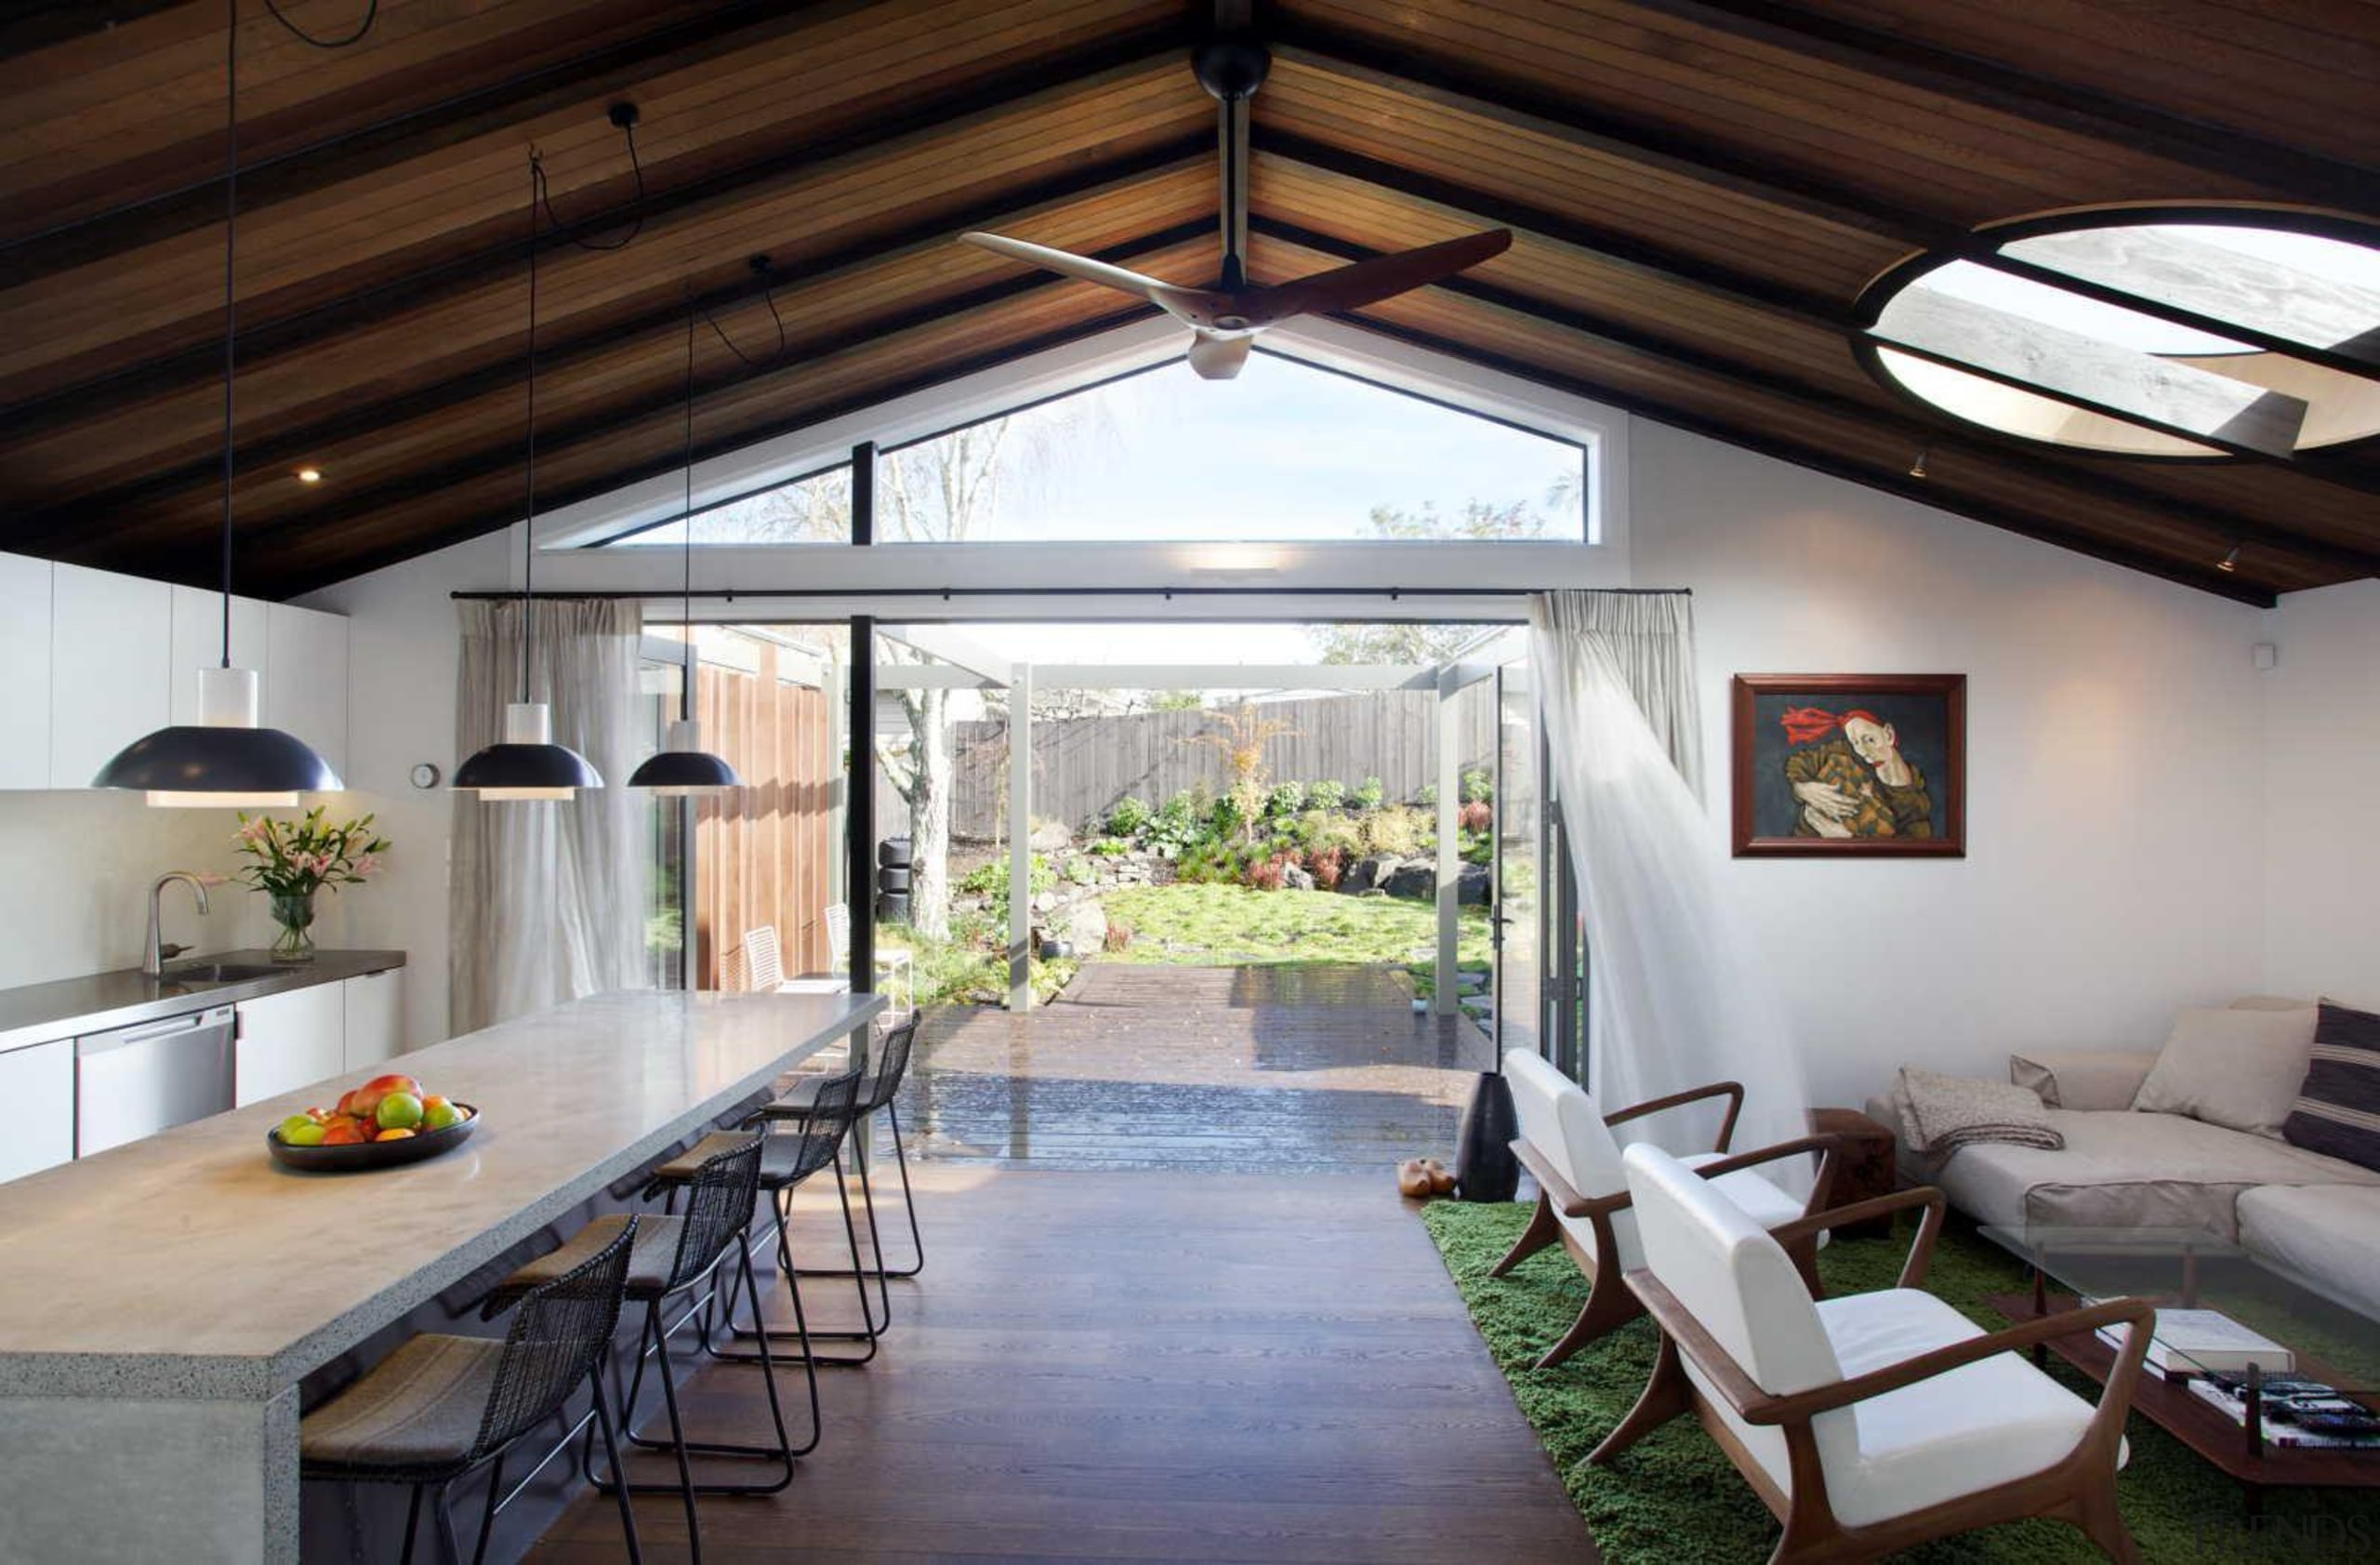 The villa's deck offers an additional exterior living ceiling, daylighting, house, interior design, real estate, roof, window, gray, black